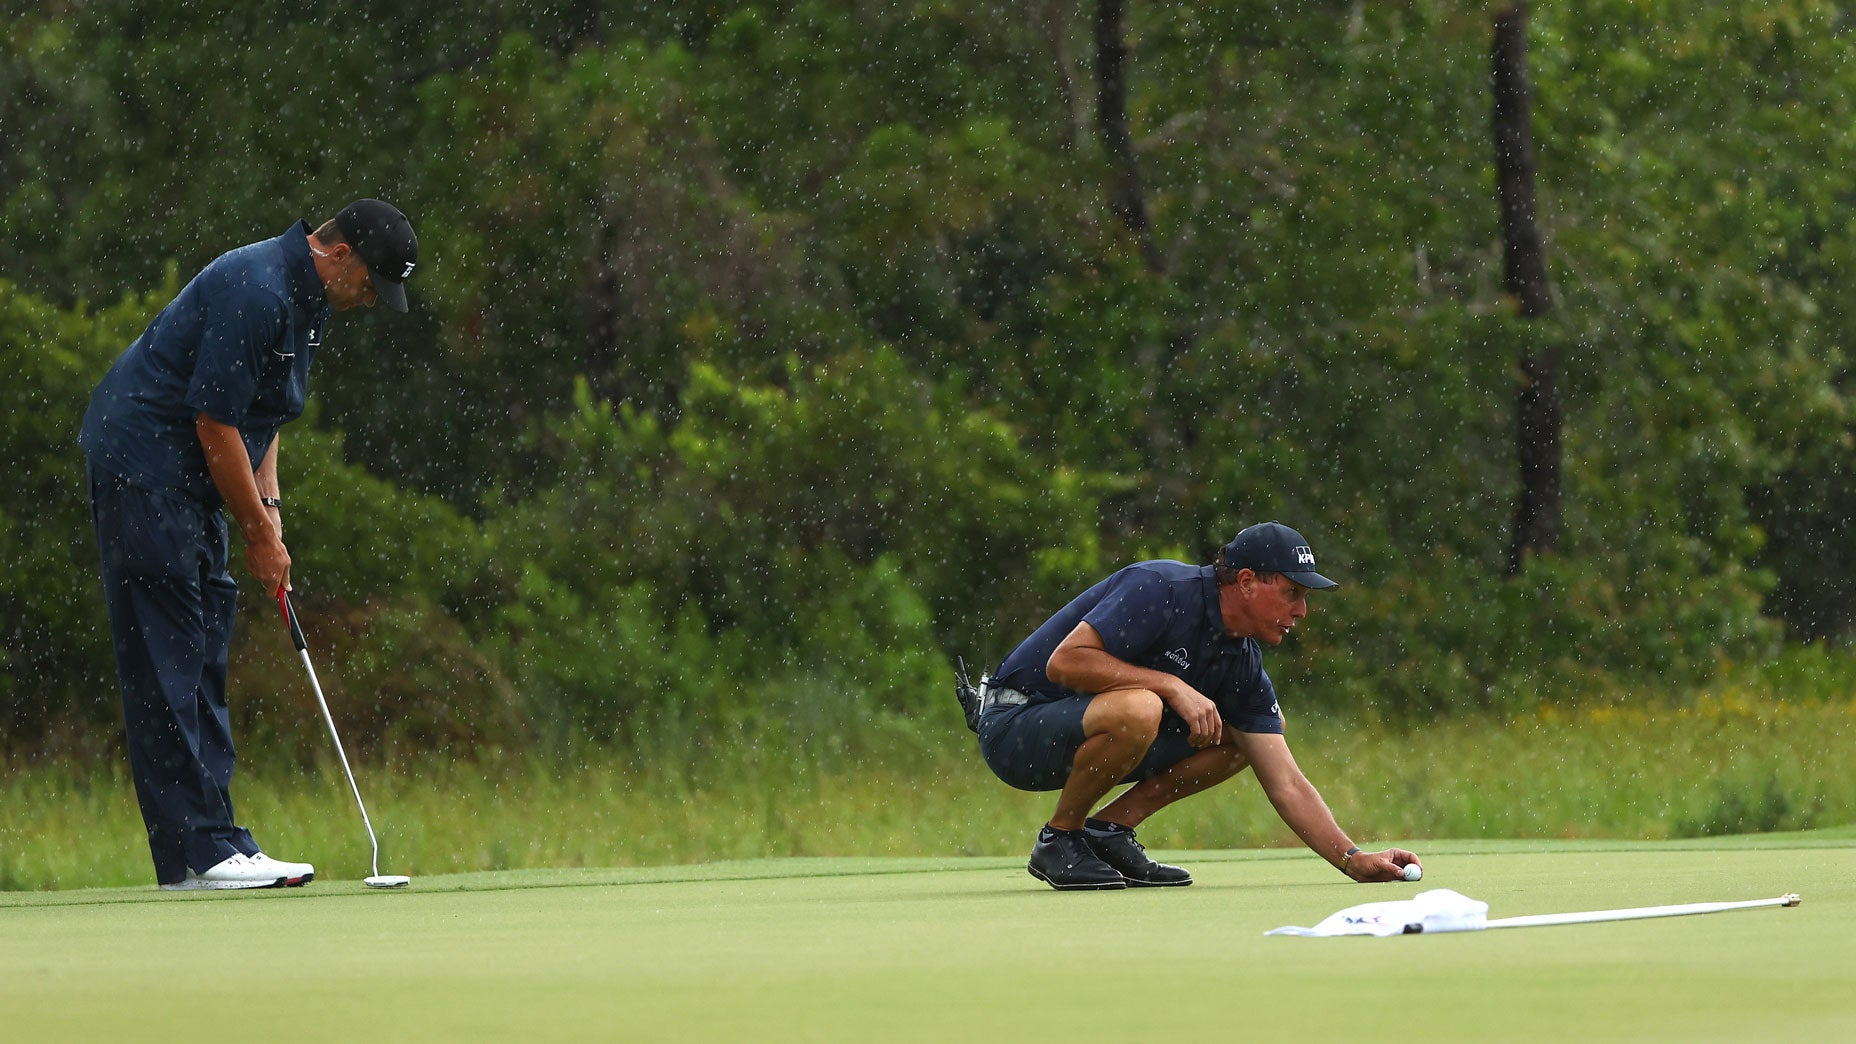 Phil Mickelson lines up a putt as Tom Brady looks on on the 12th green at Medalist Golf Club.